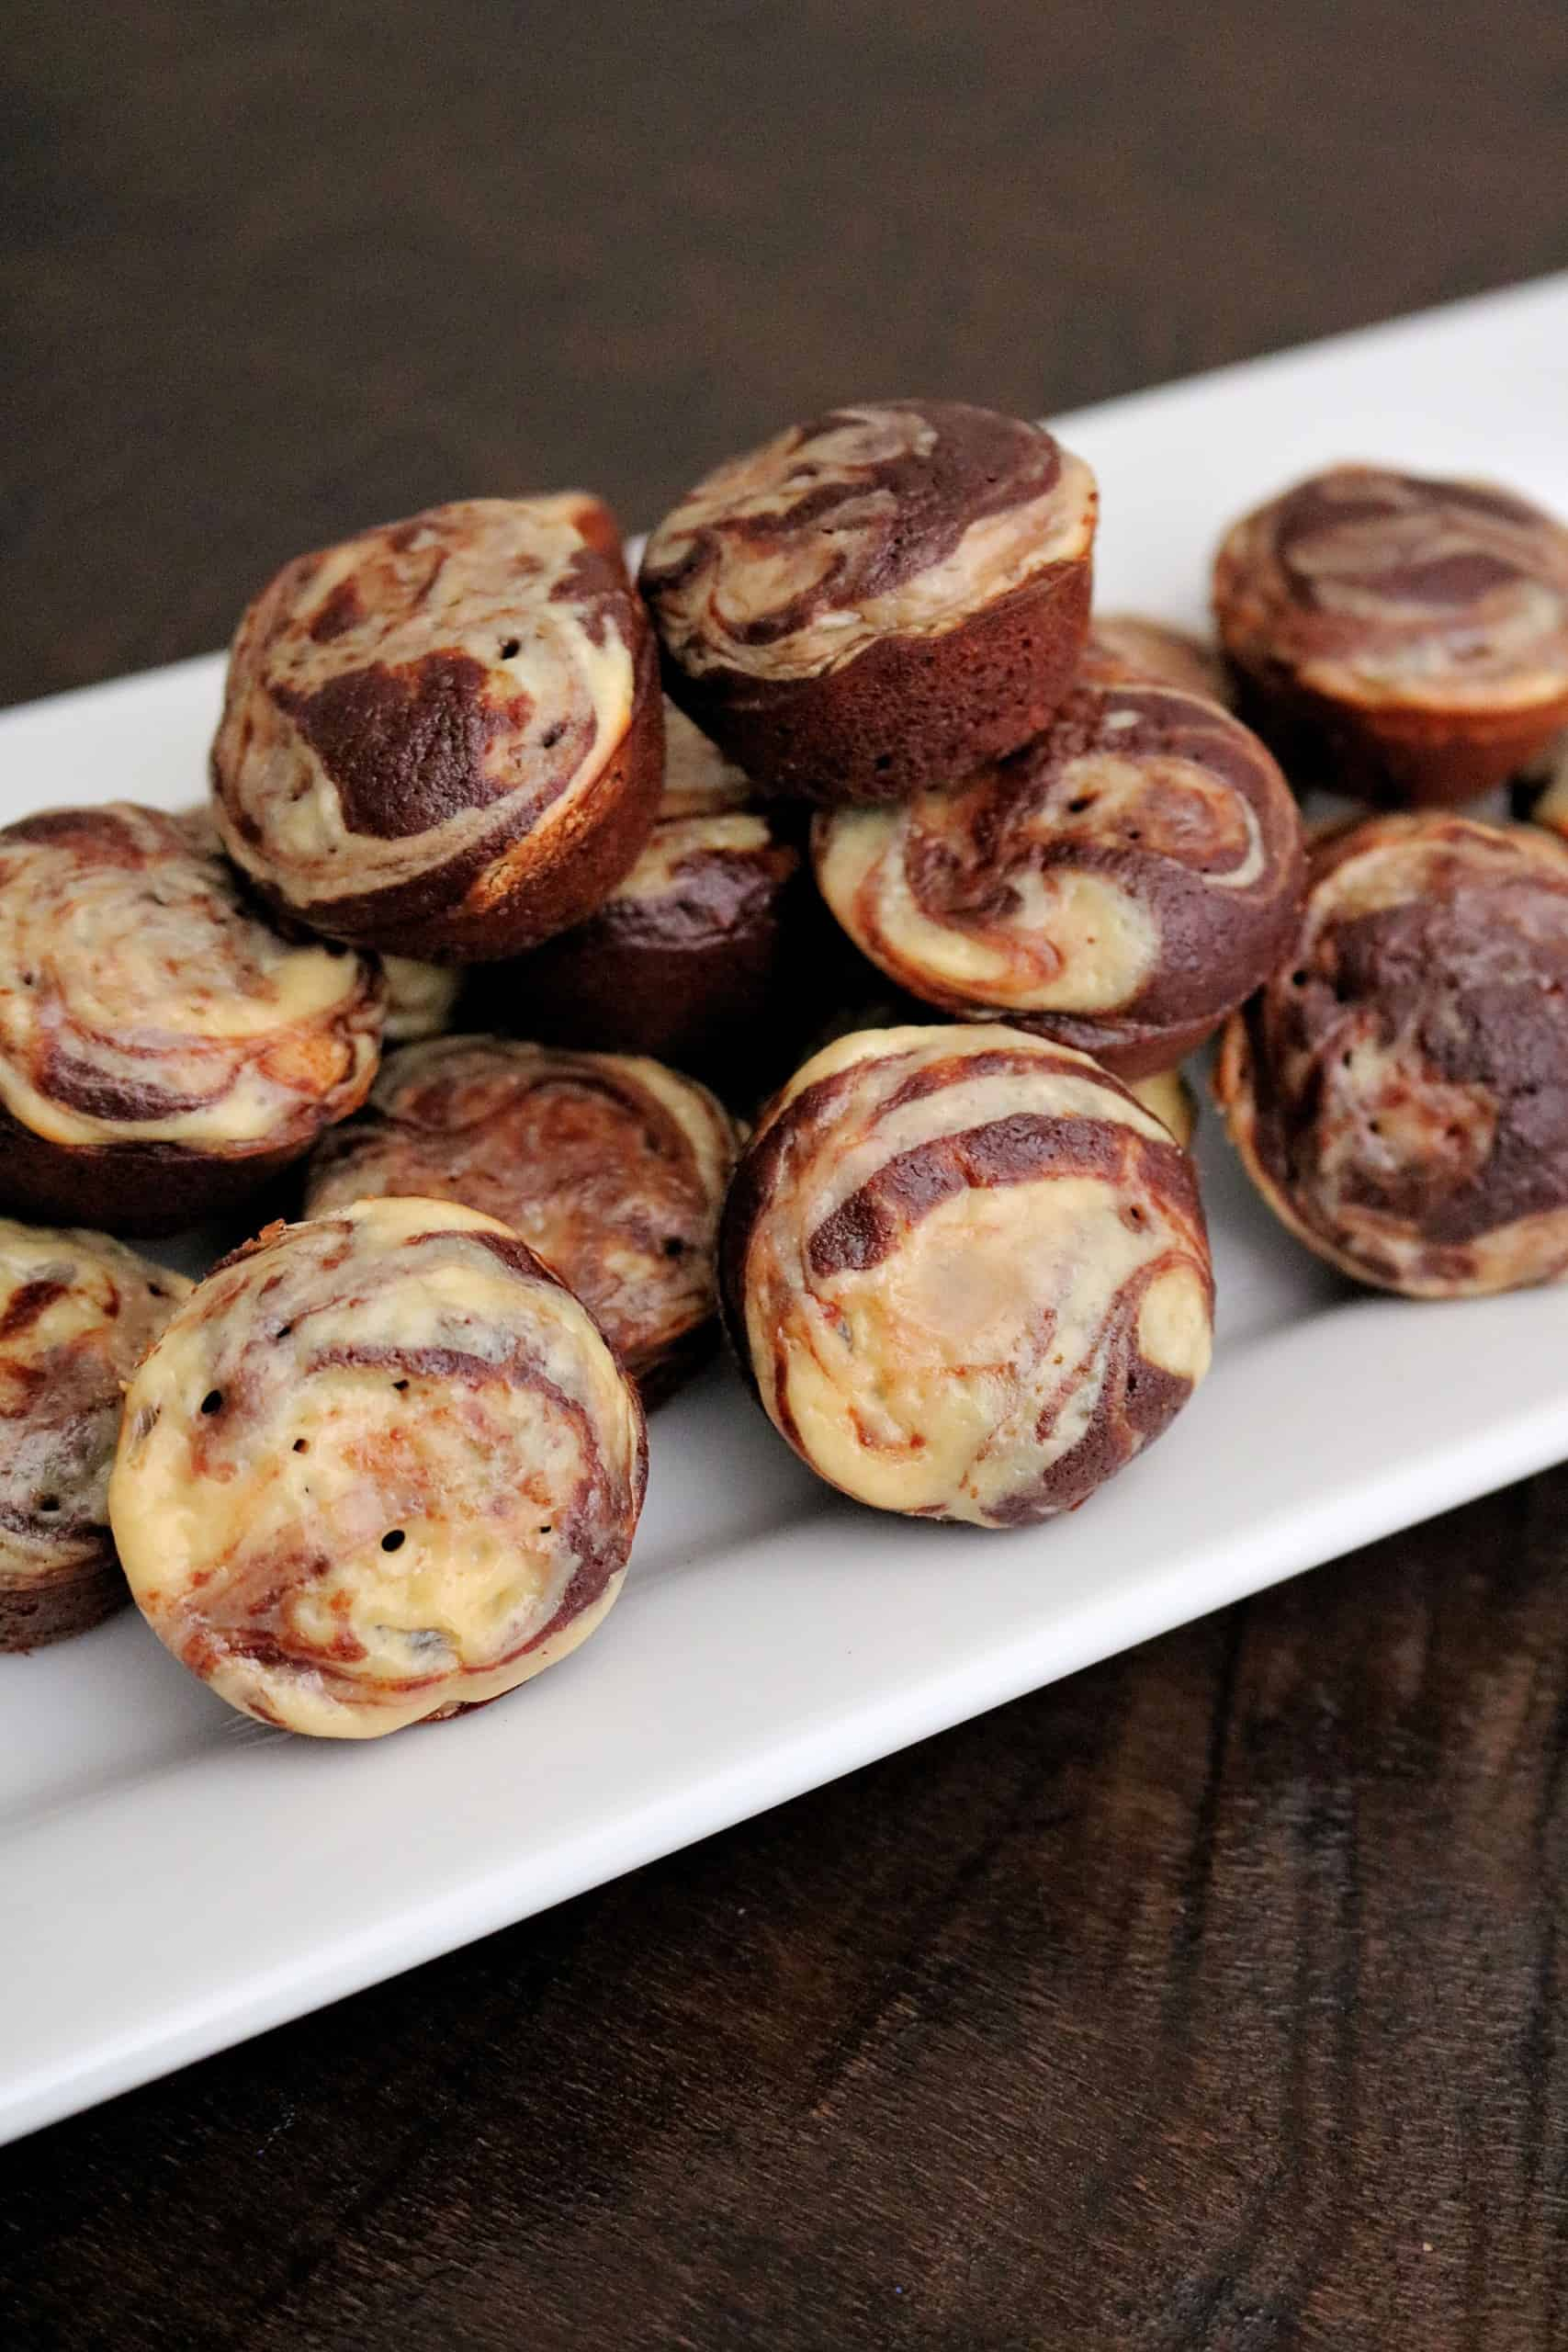 These Skinny Cheesecake Swirl Brownie Muffins are so delicious and easy to make in just 25 minutes! These fudgy, bite-sized brownie muffins are swirled with delicious, light cream cheese and will become your new favorite afternoon snack or healthy dessert! #browniemuffins #browniebites #cheesecakebrownies #healthybrownies